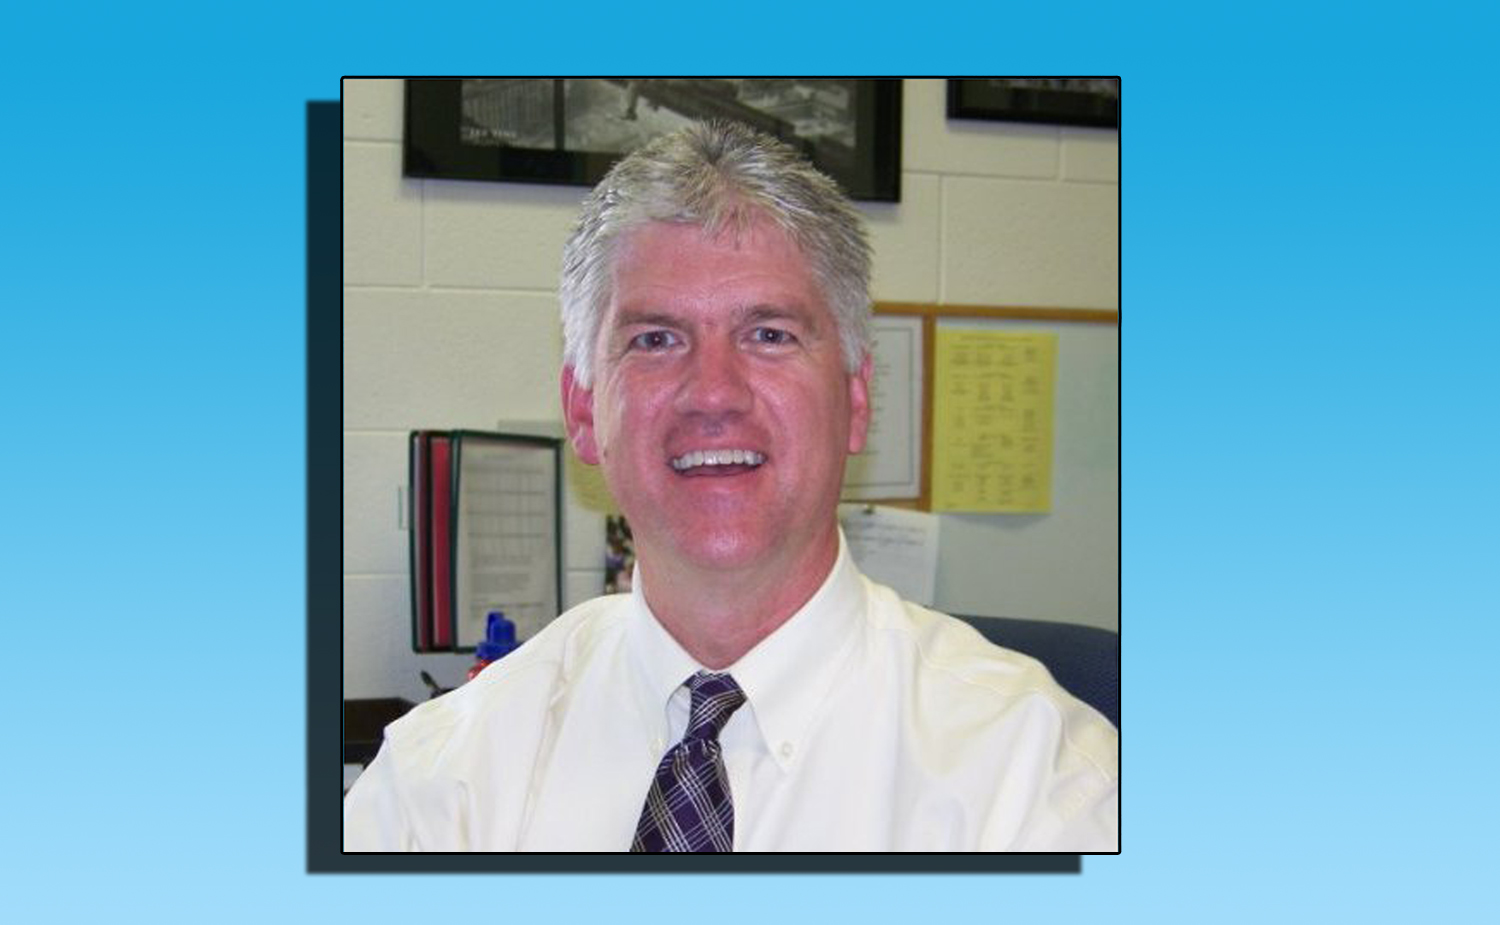 Linton Named as New Superintendent of Schools at East Rochester